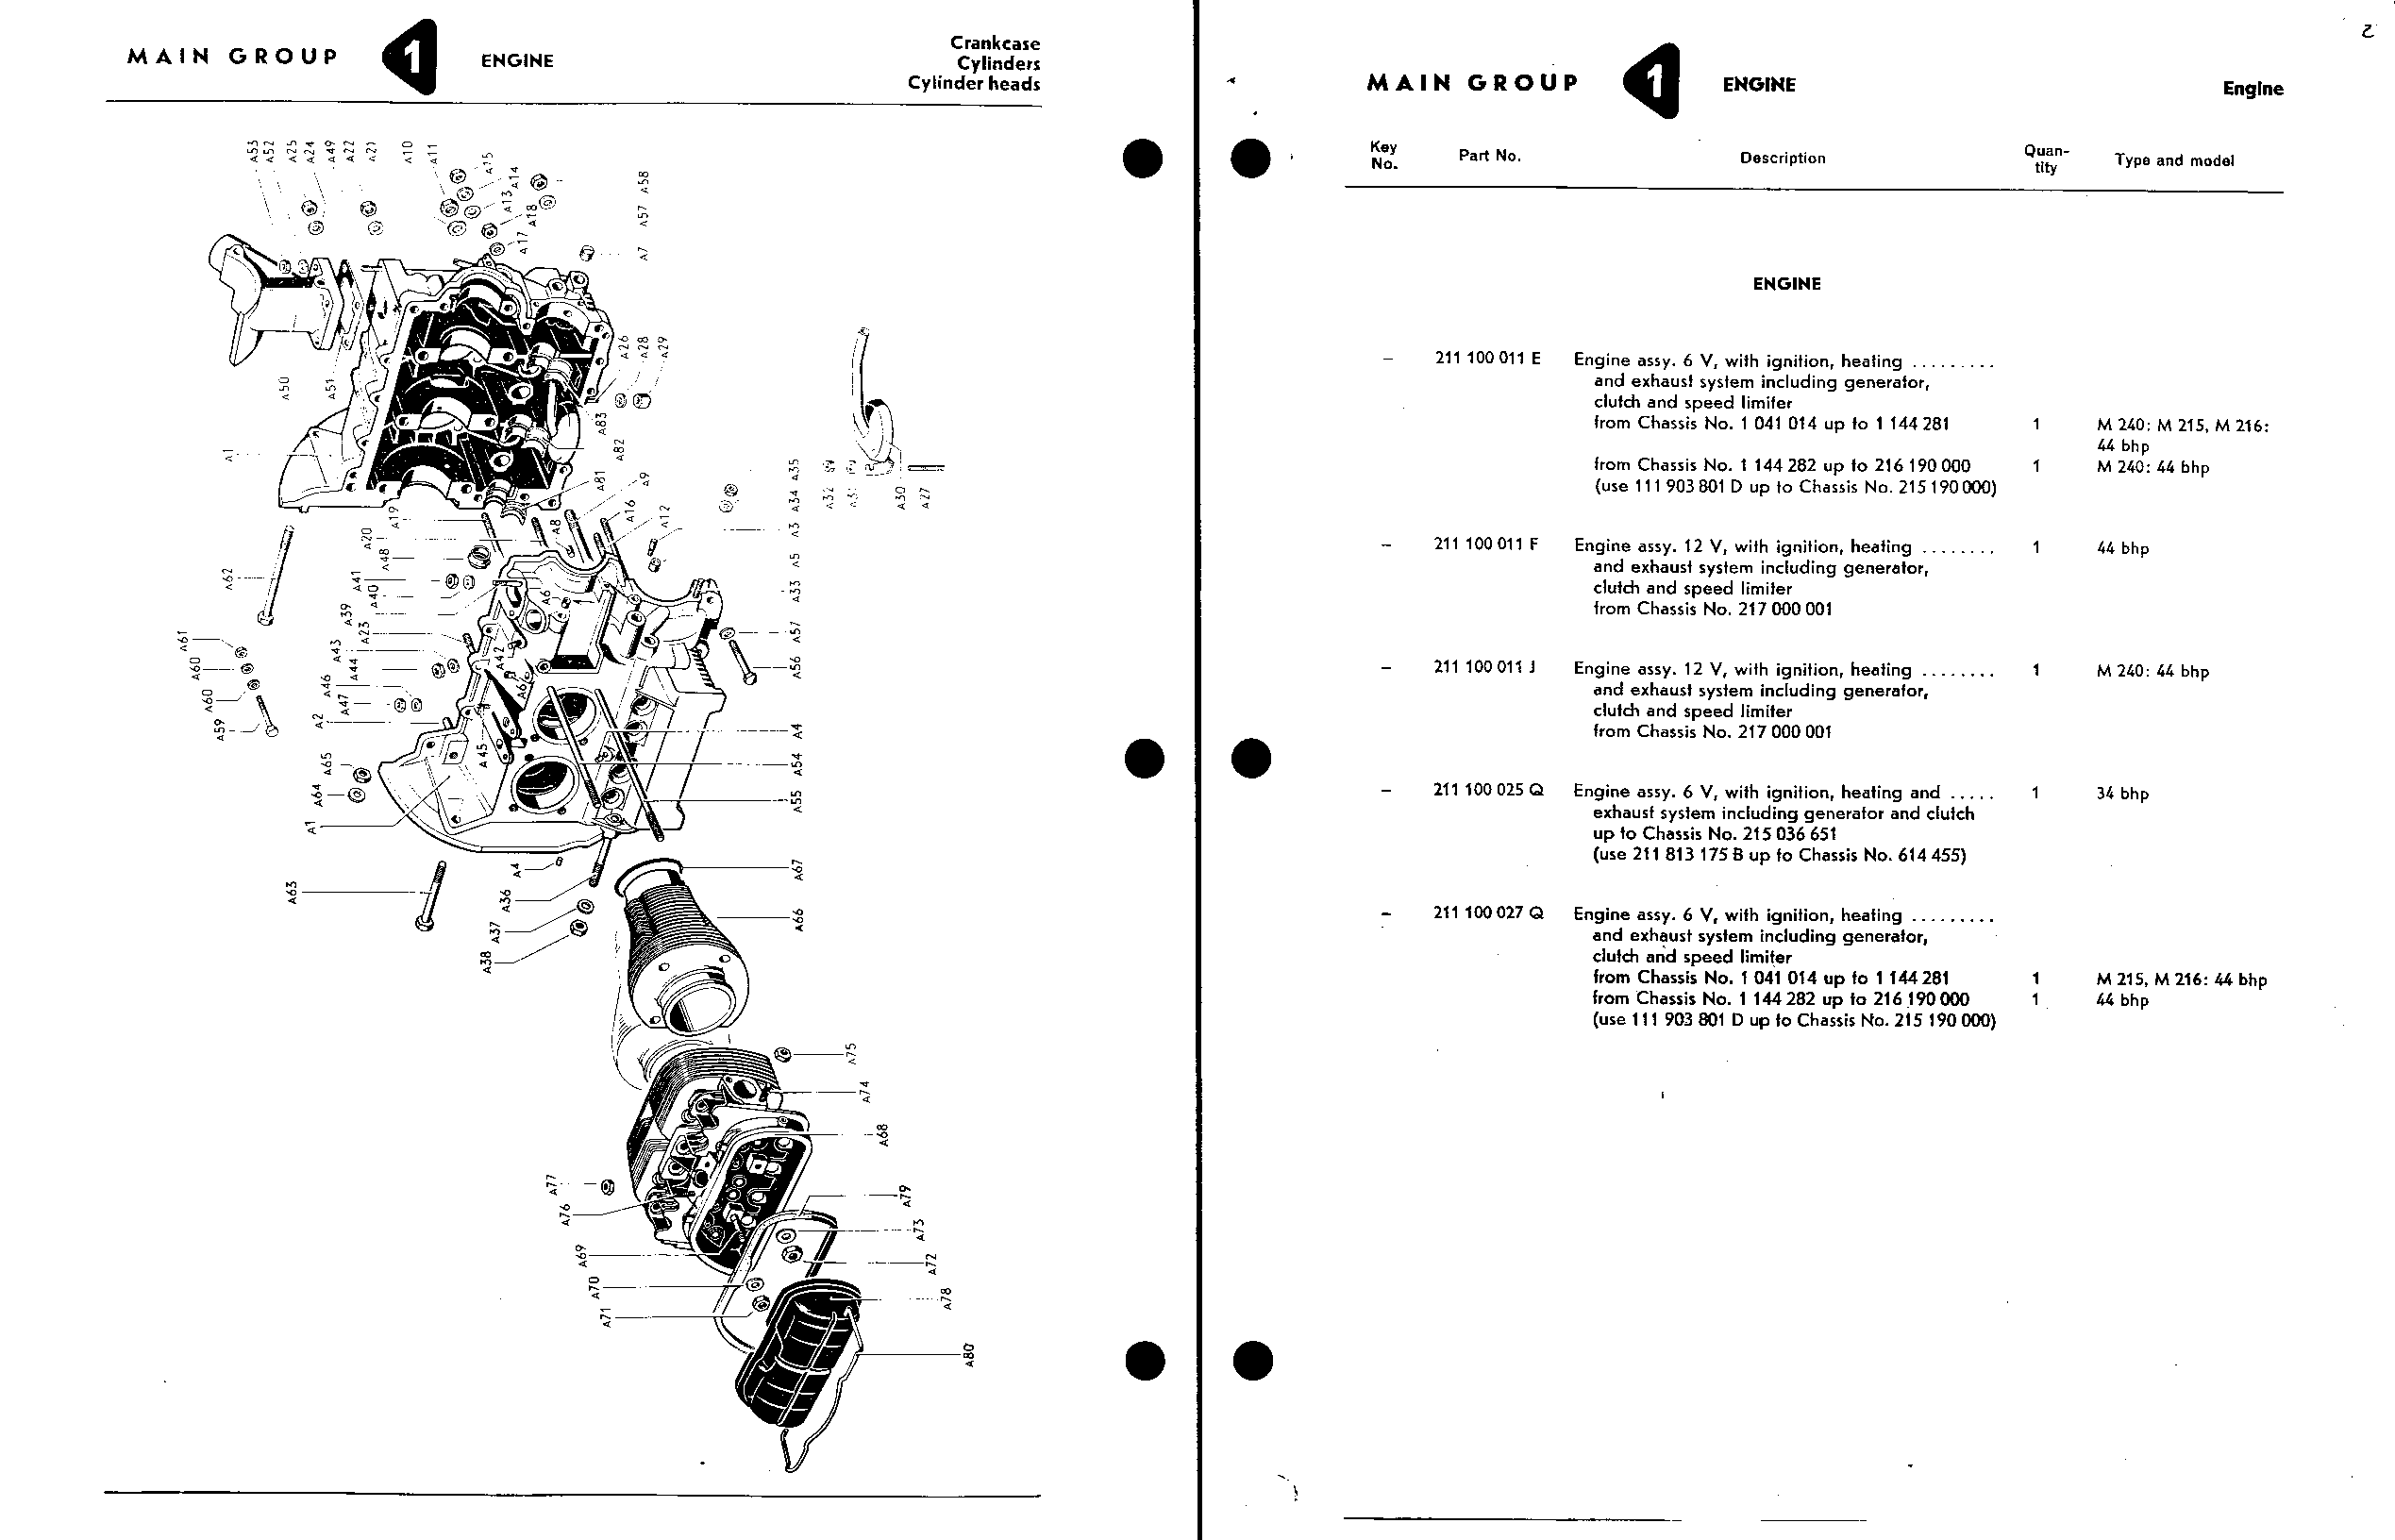 vw type 1 engine diagram  vw  free engine image for user manual download